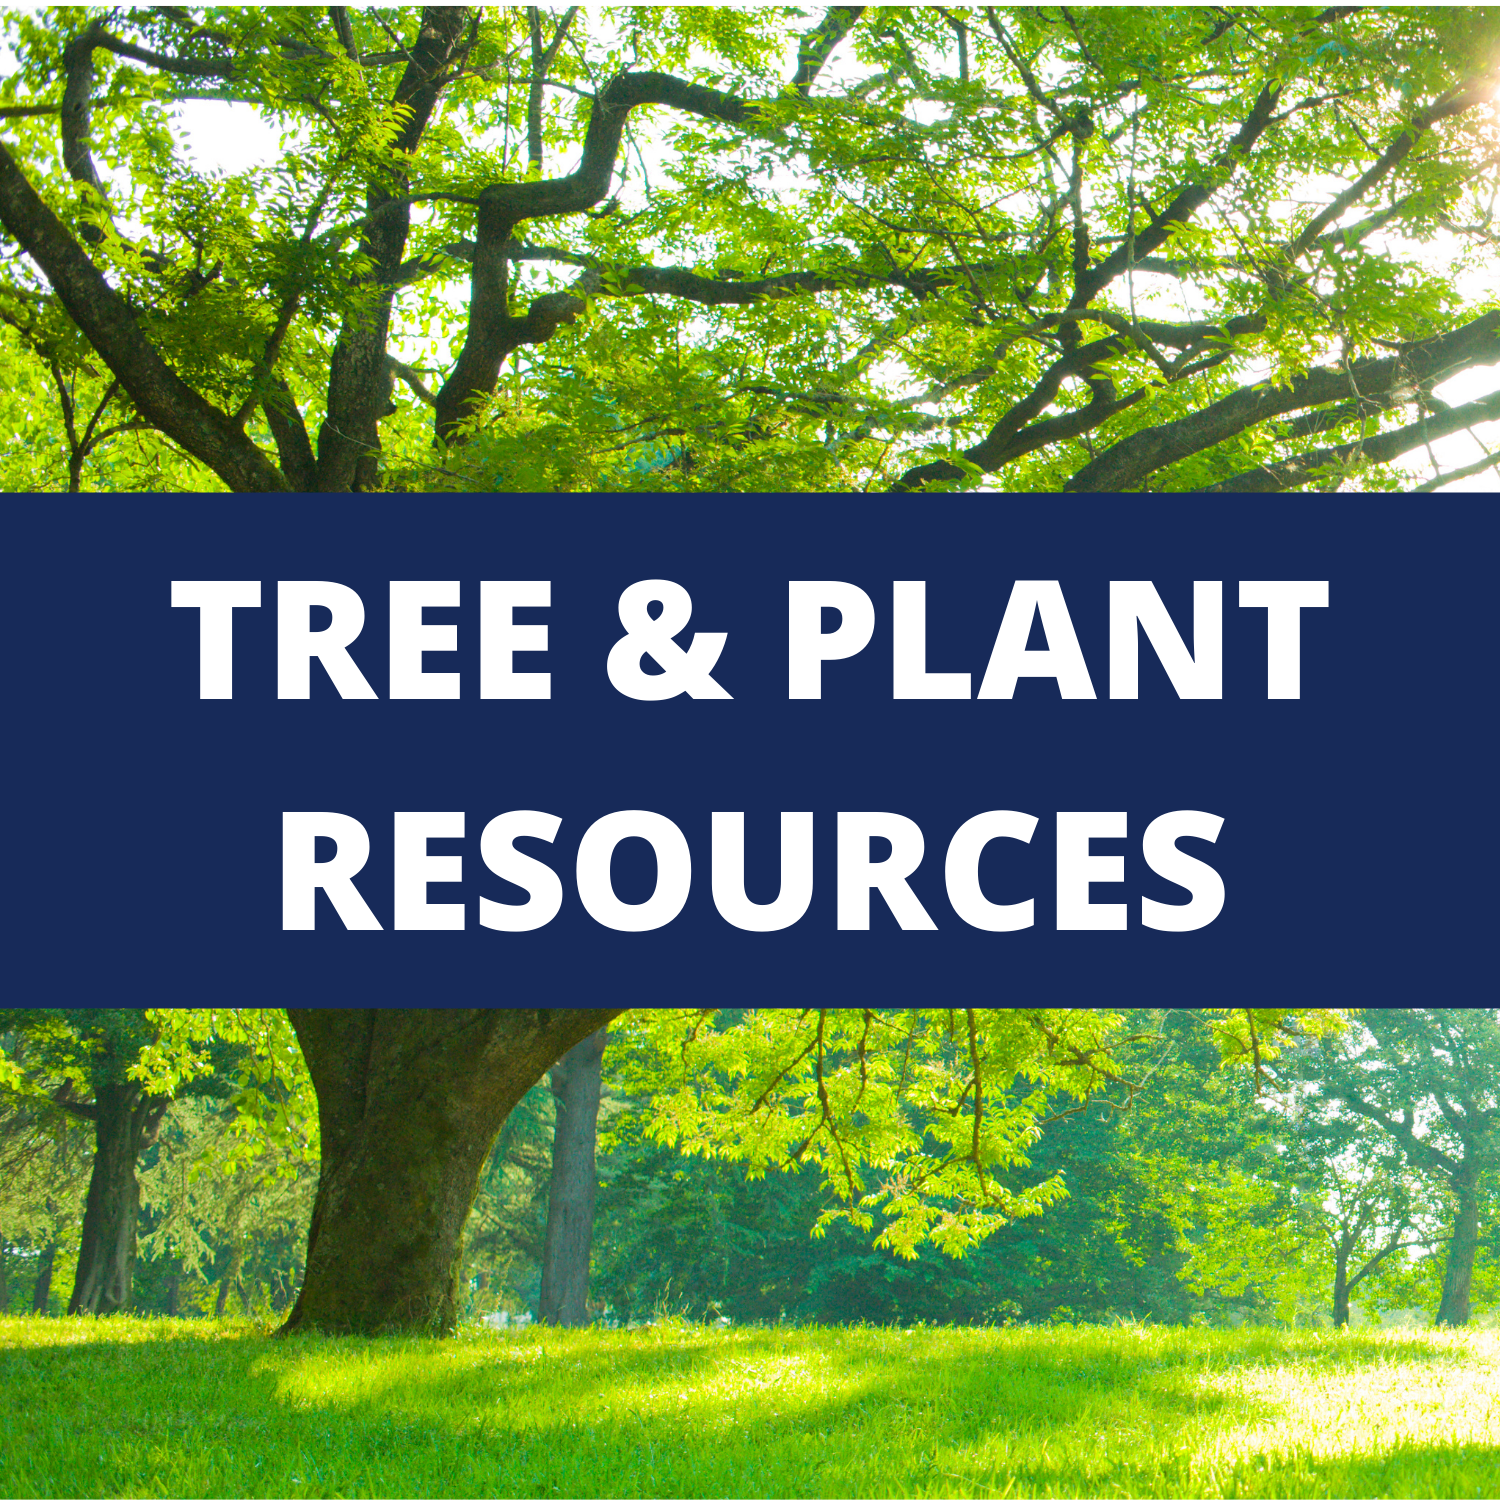 Redirect to Tree & Plant Resources